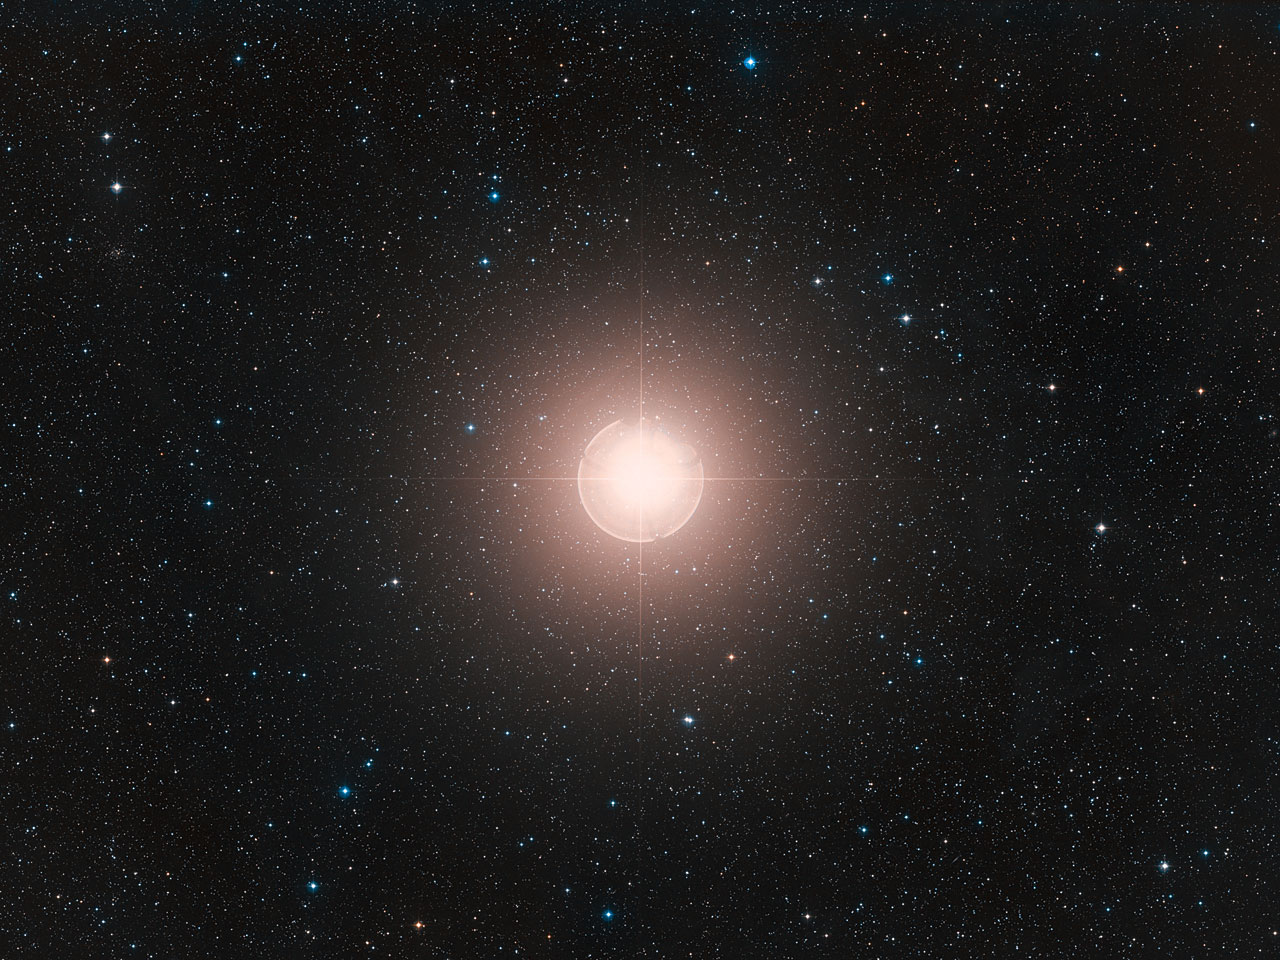 Direct-sky Image of Betelgeuse